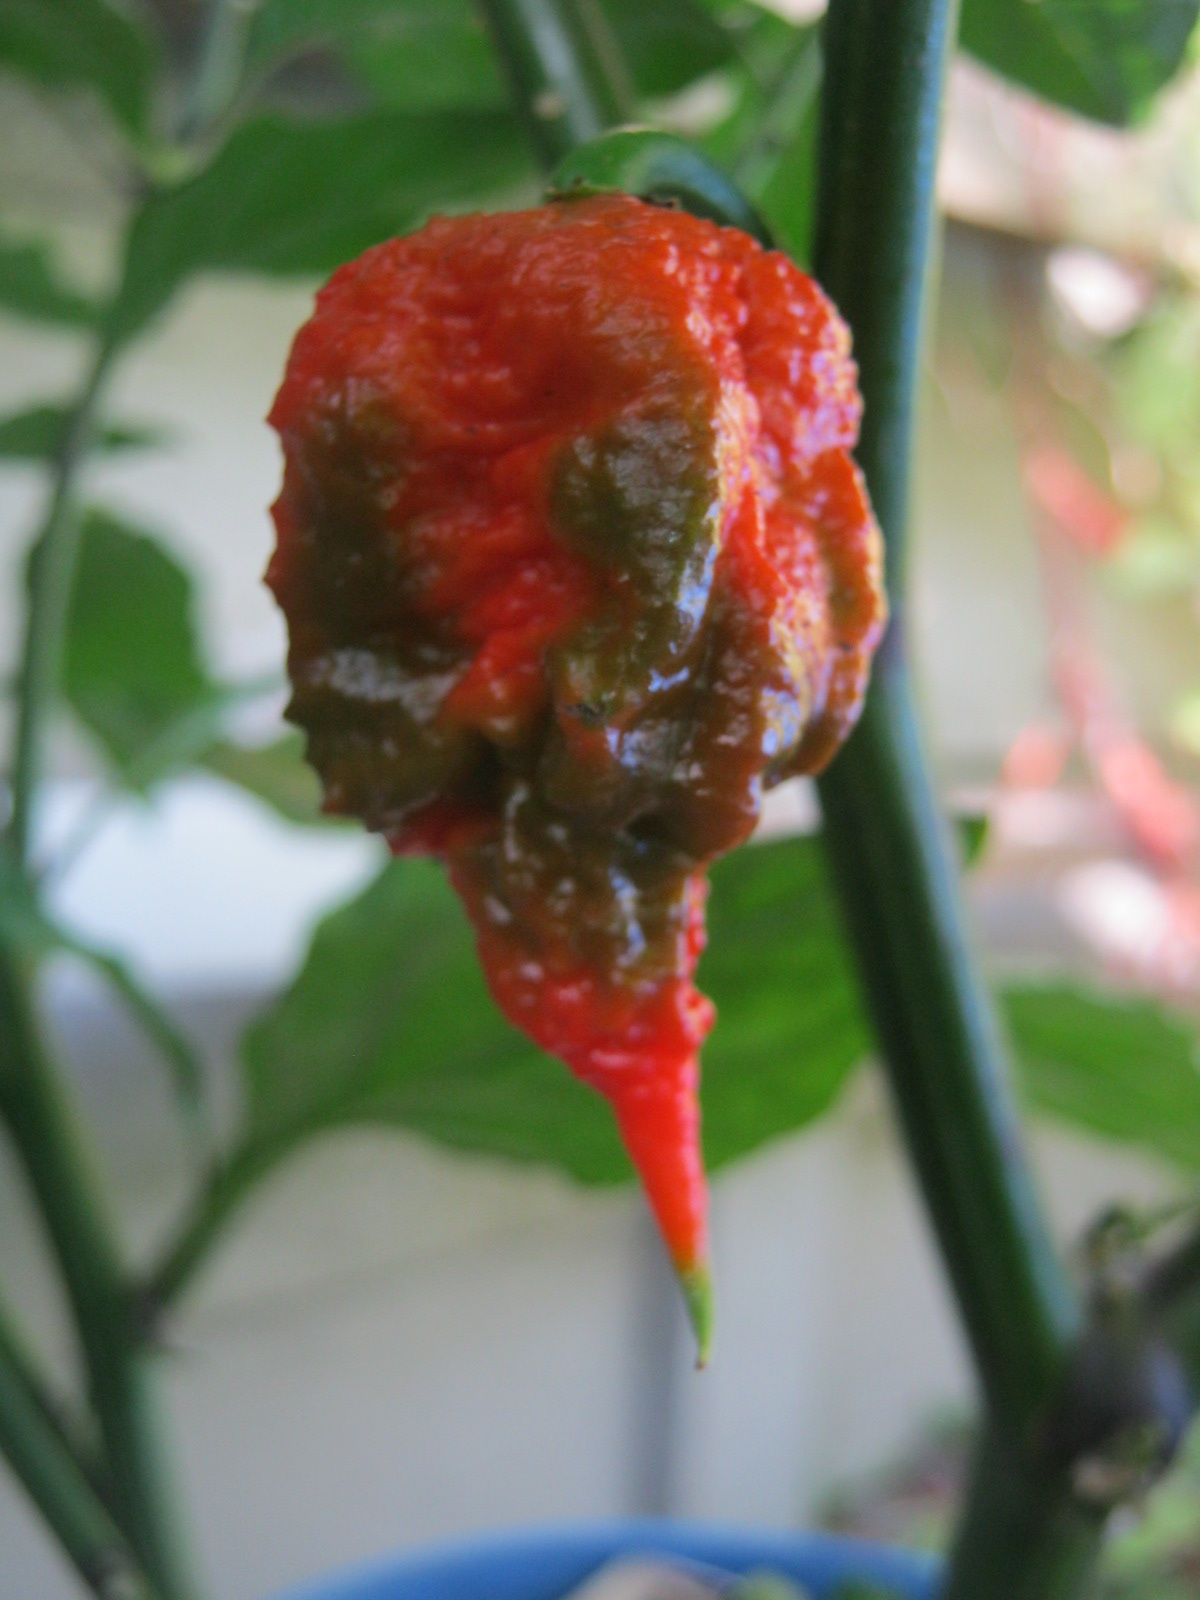 Chillies played a big part in Mayan food culture